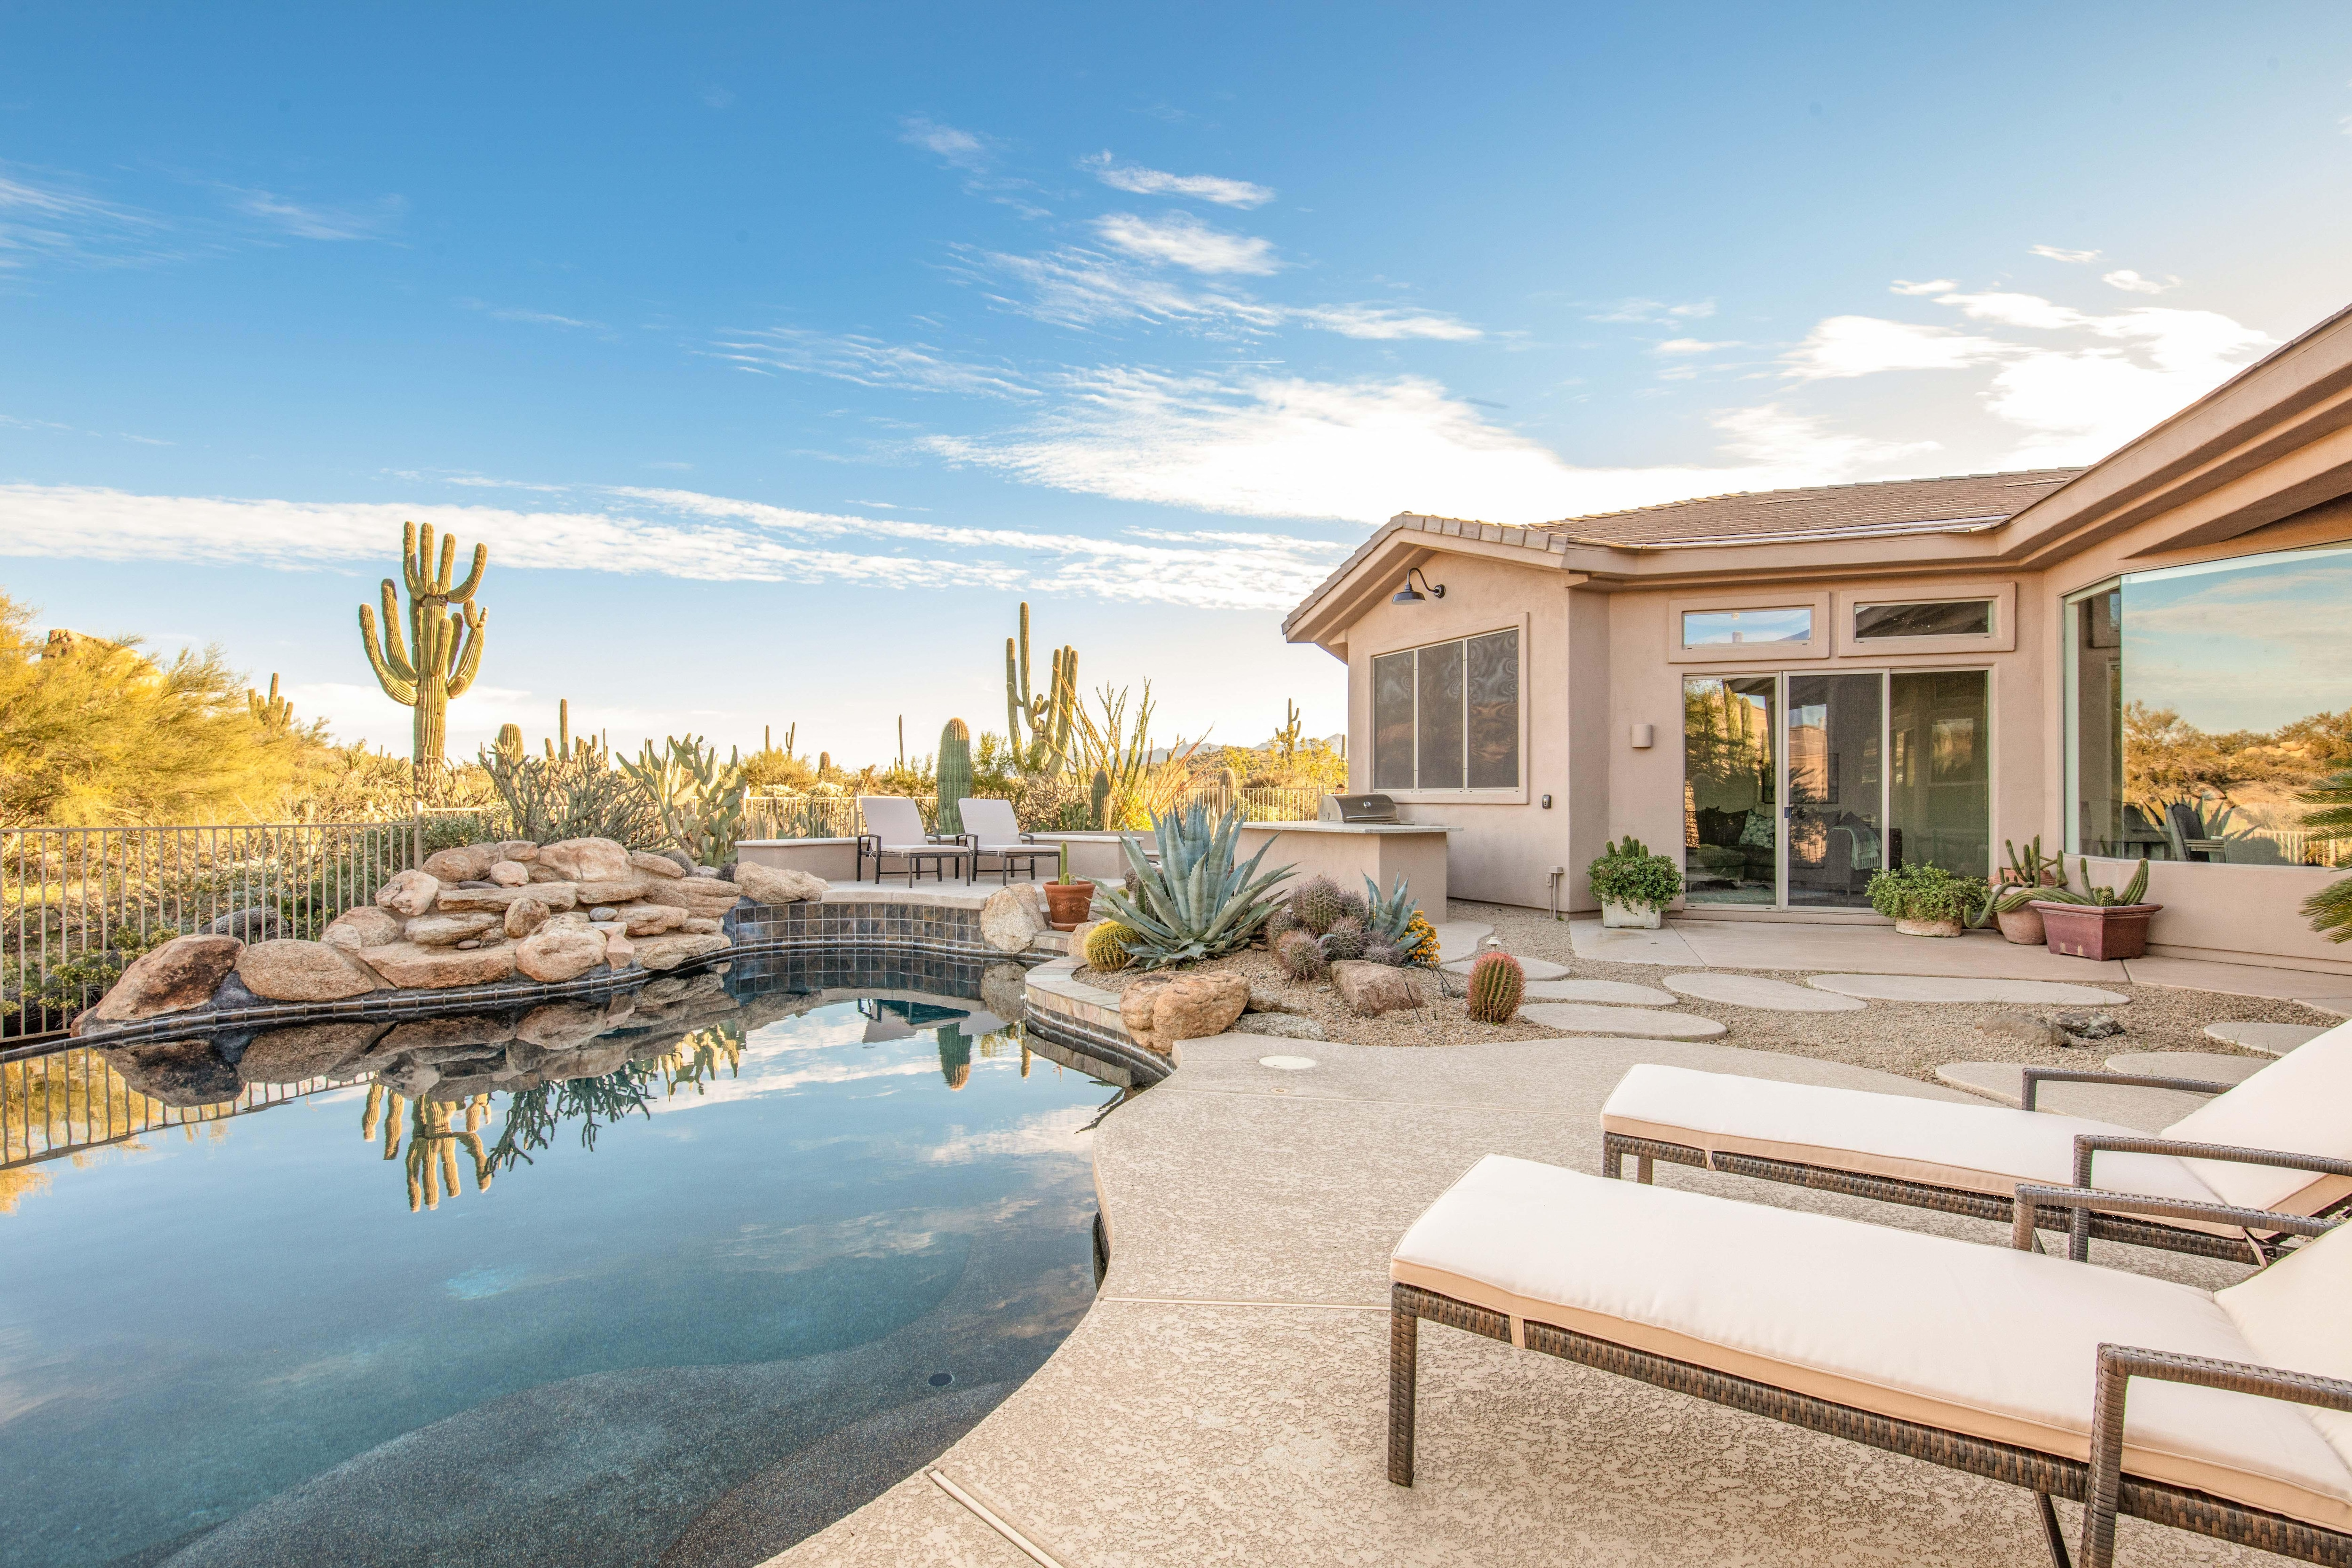 Welcome to Scottsdale! Your luxury desert getaway is professionally managed by TurnKey Vacation Rentals.